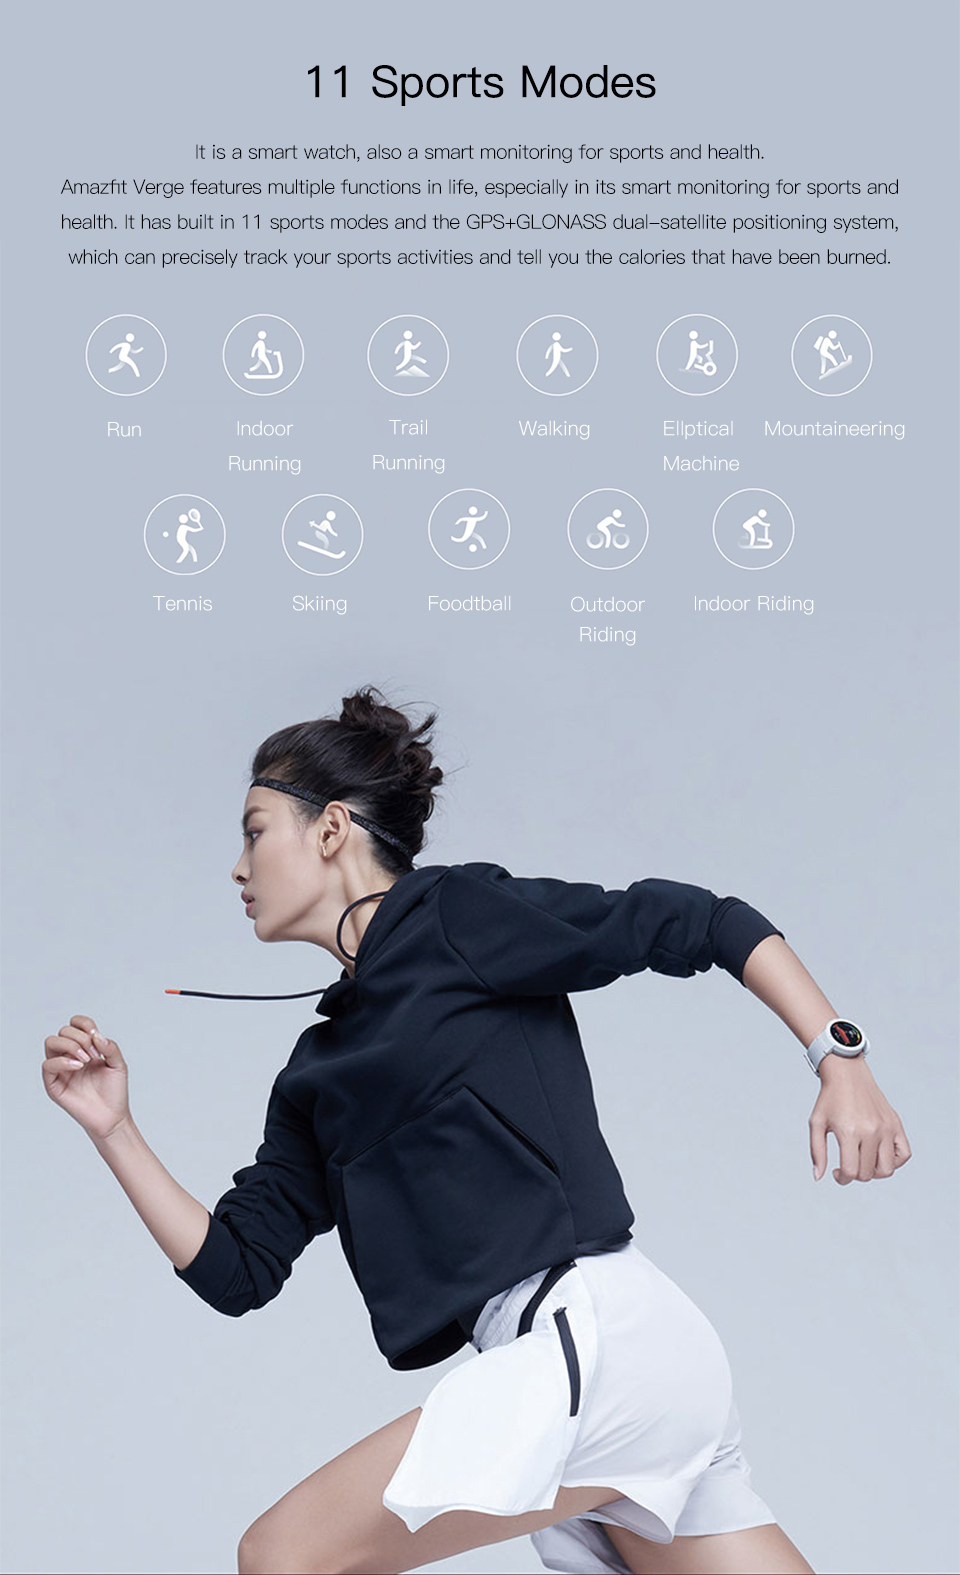 Unisex Smartwatch with sports modes and phone calling